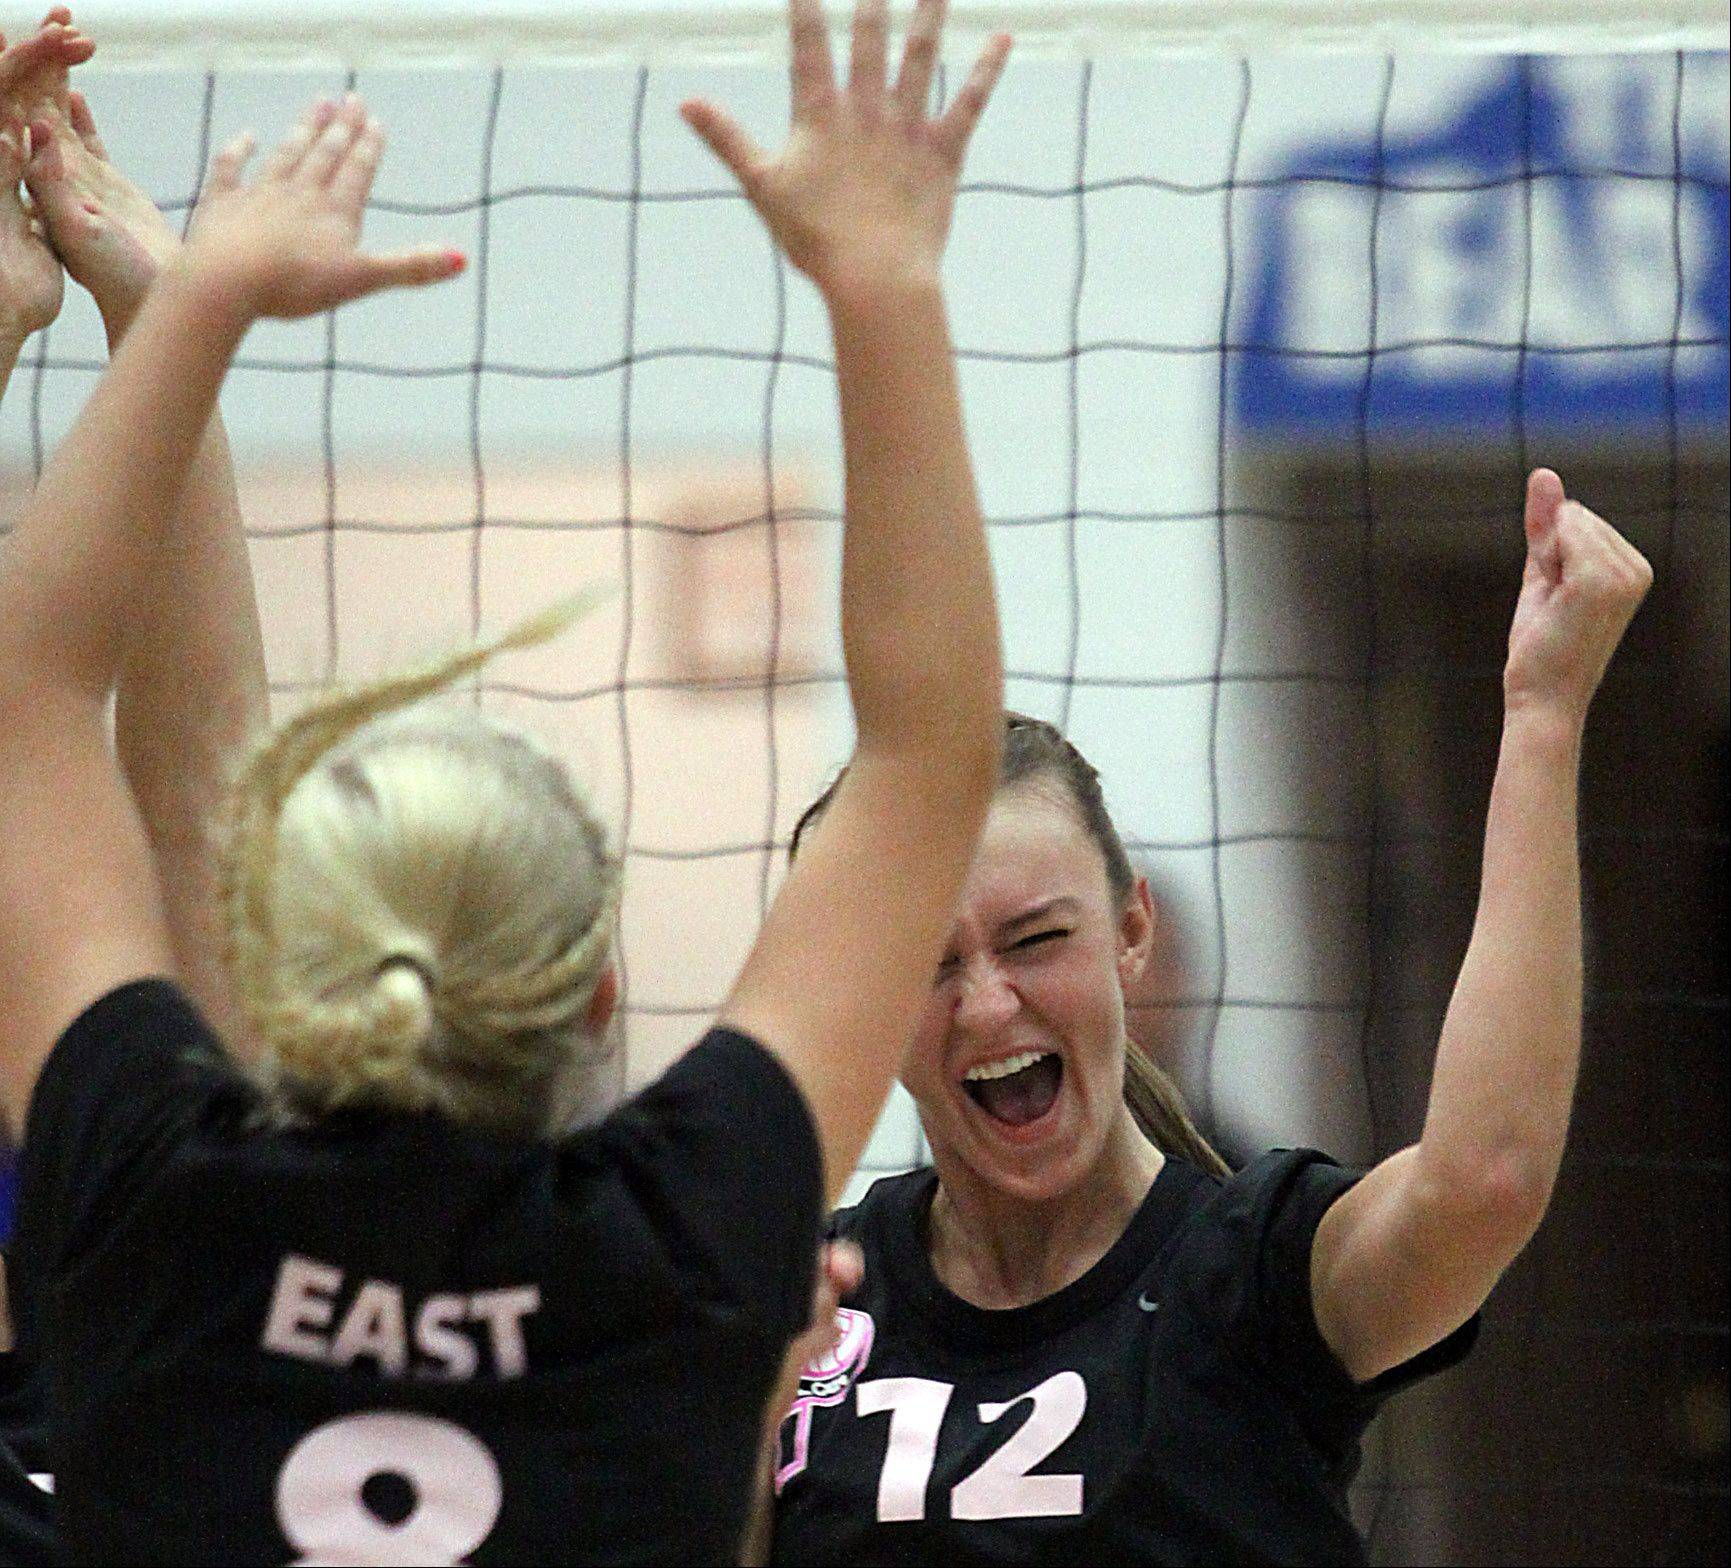 St. Charles East's Ashley Bullock, right, and Chloe Rojas, left, celebrate a point during a varsity volleyball game at St. Charles North on Tuesday evening.